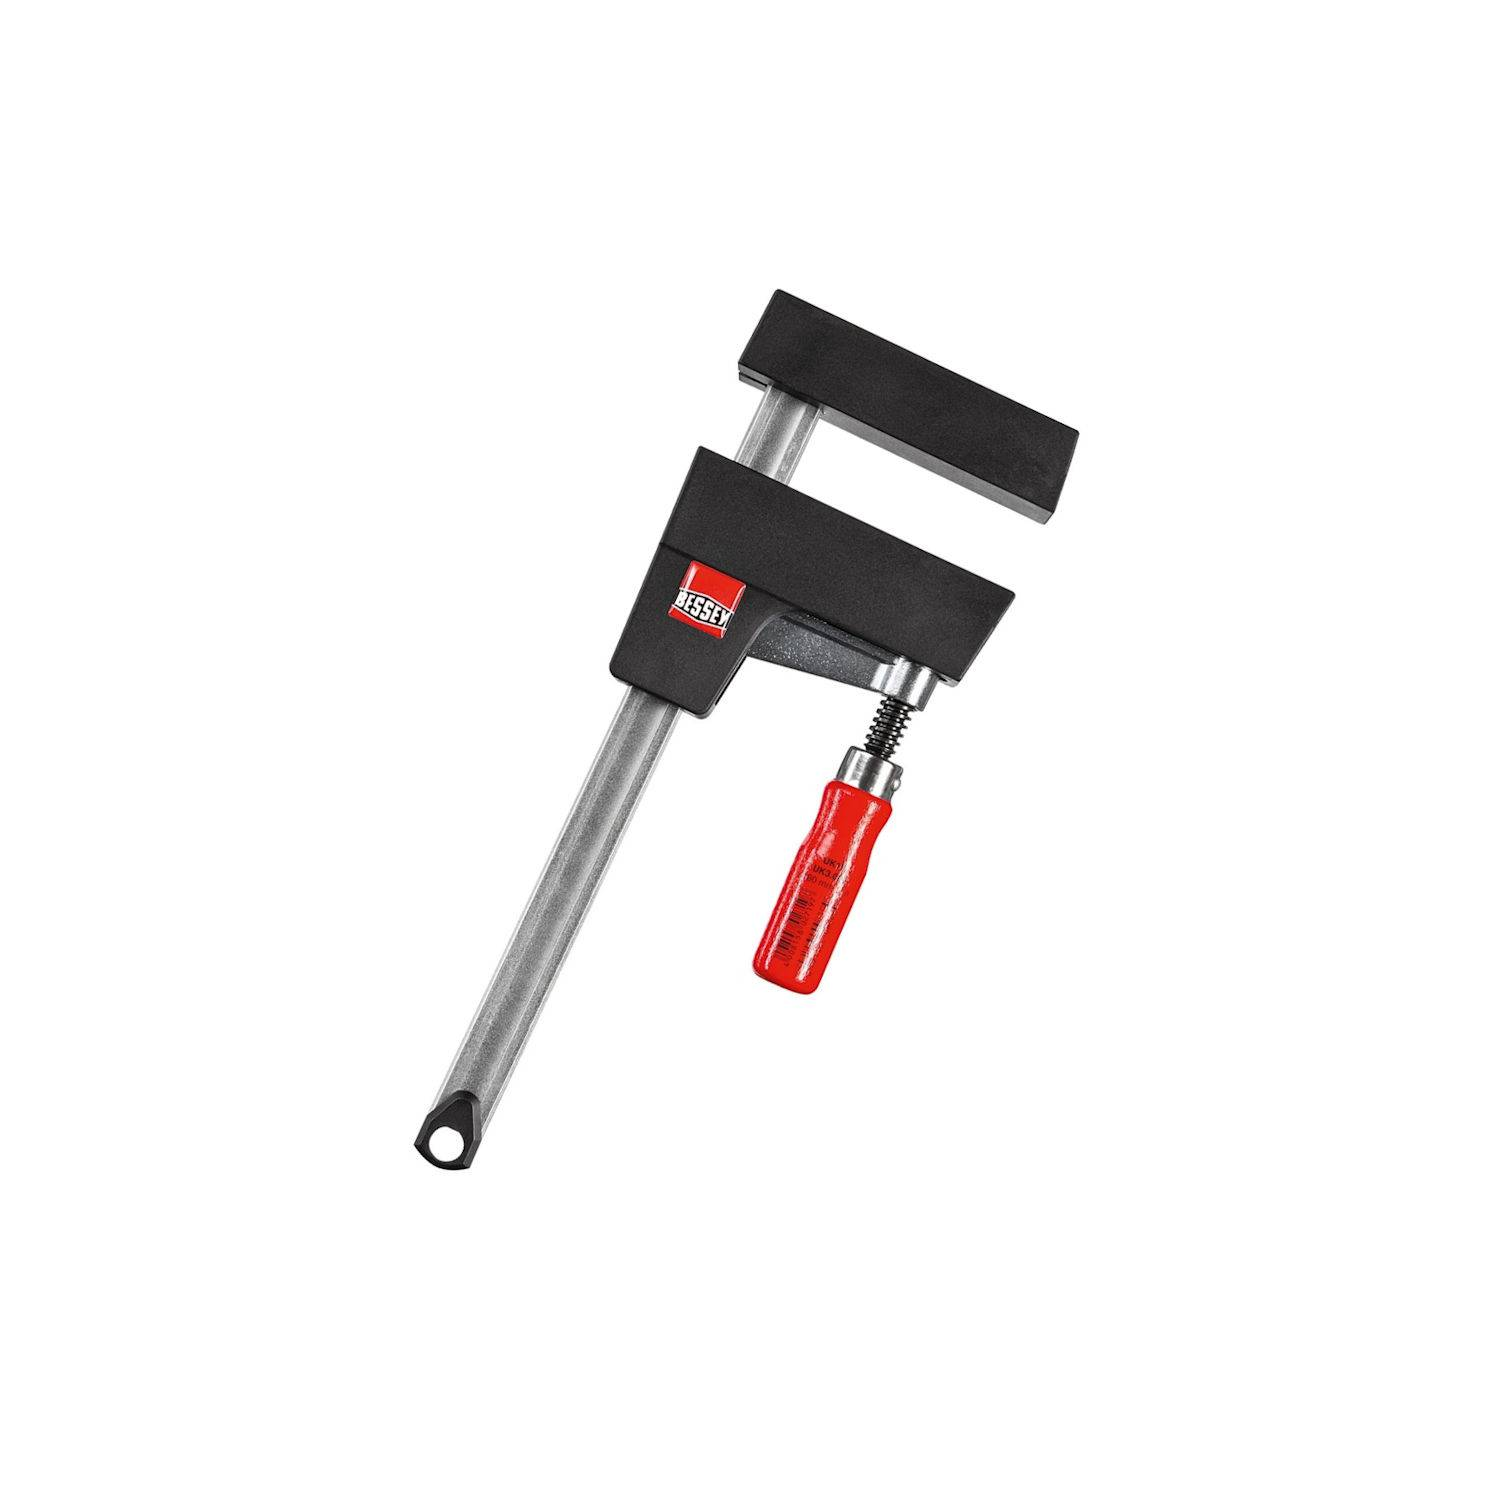 Bessey-UK16-uniklamp